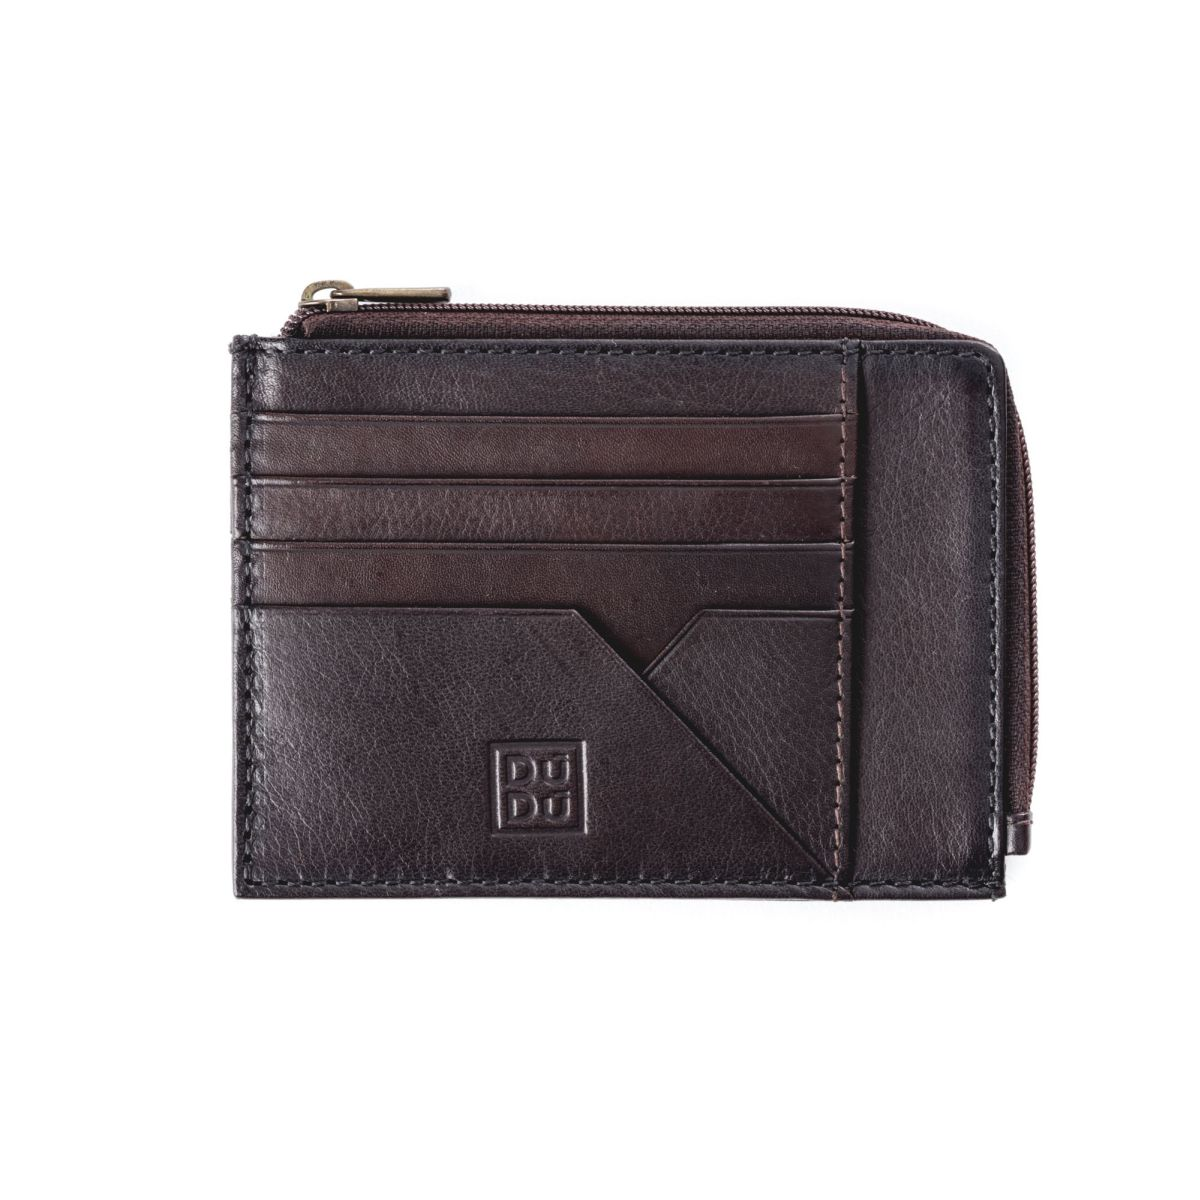 DuDu Flat Leather Wallet - Dark Brown